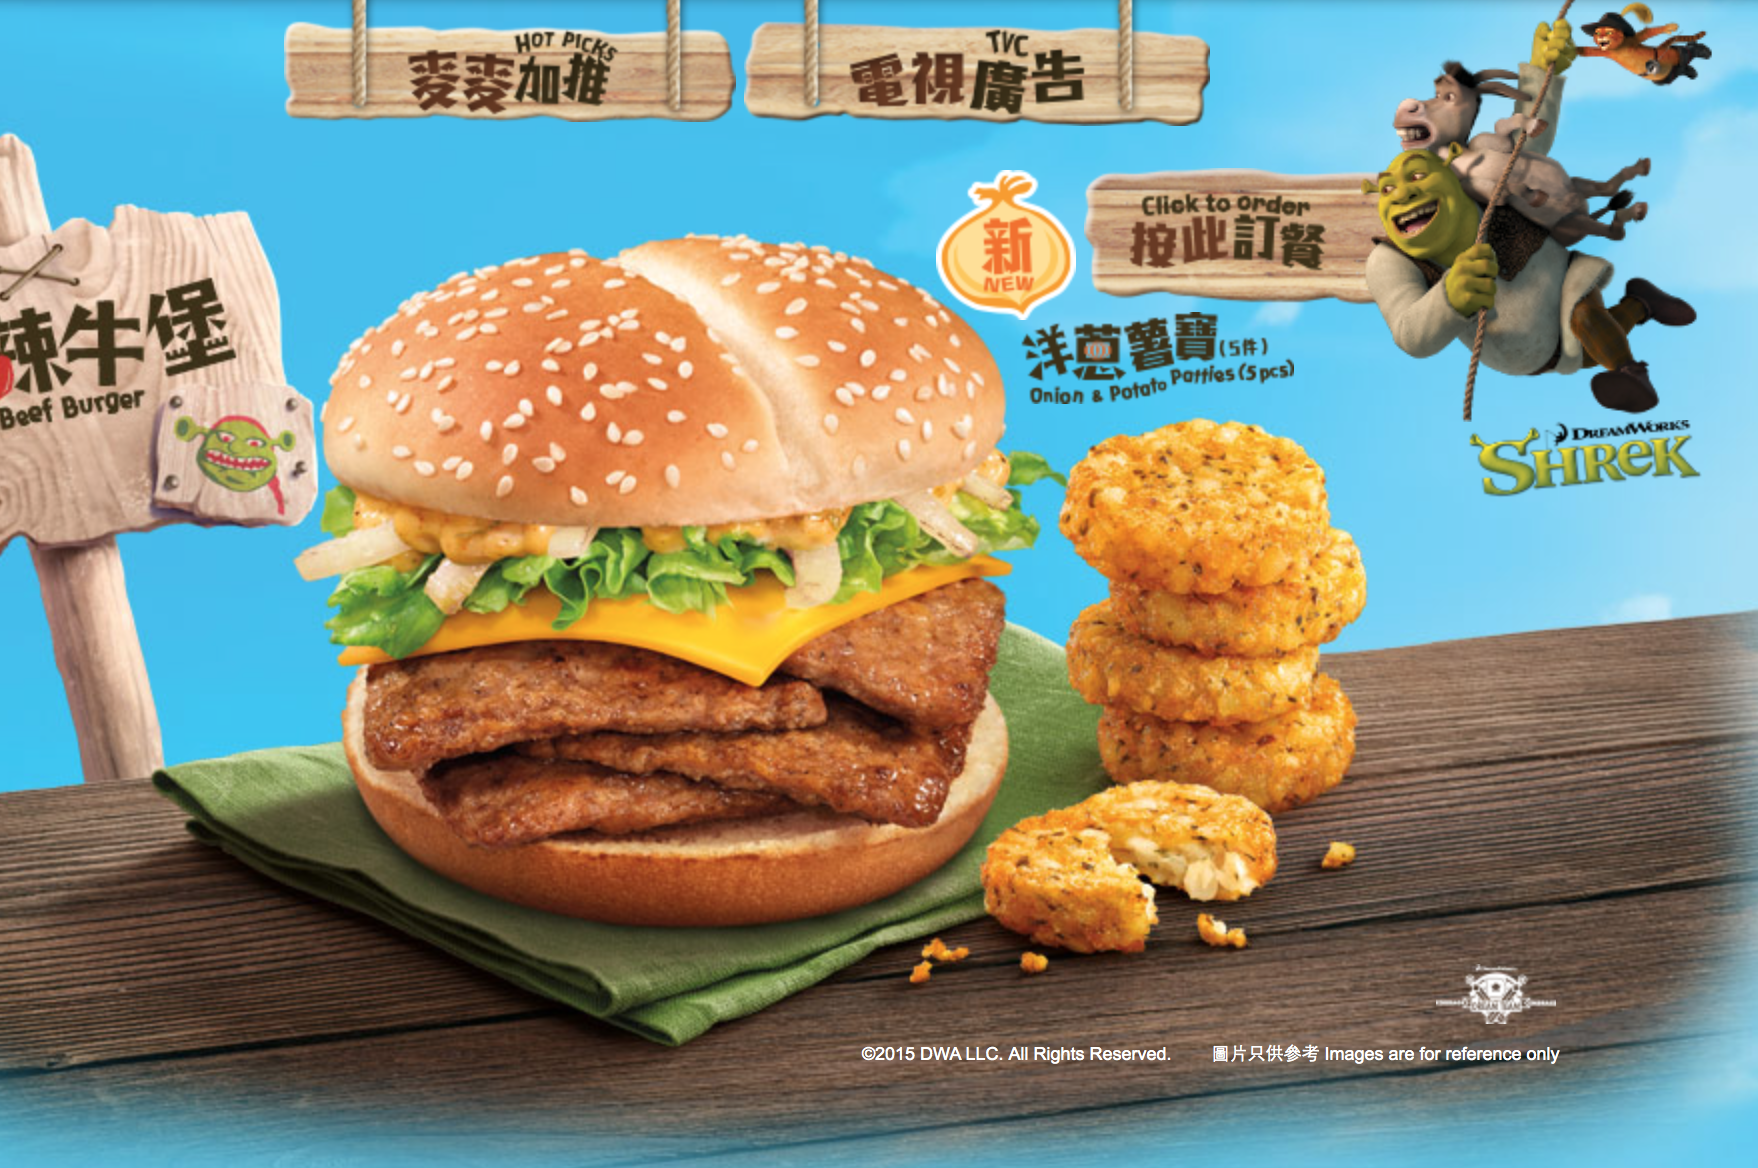 mcdonalds_shrek_burger